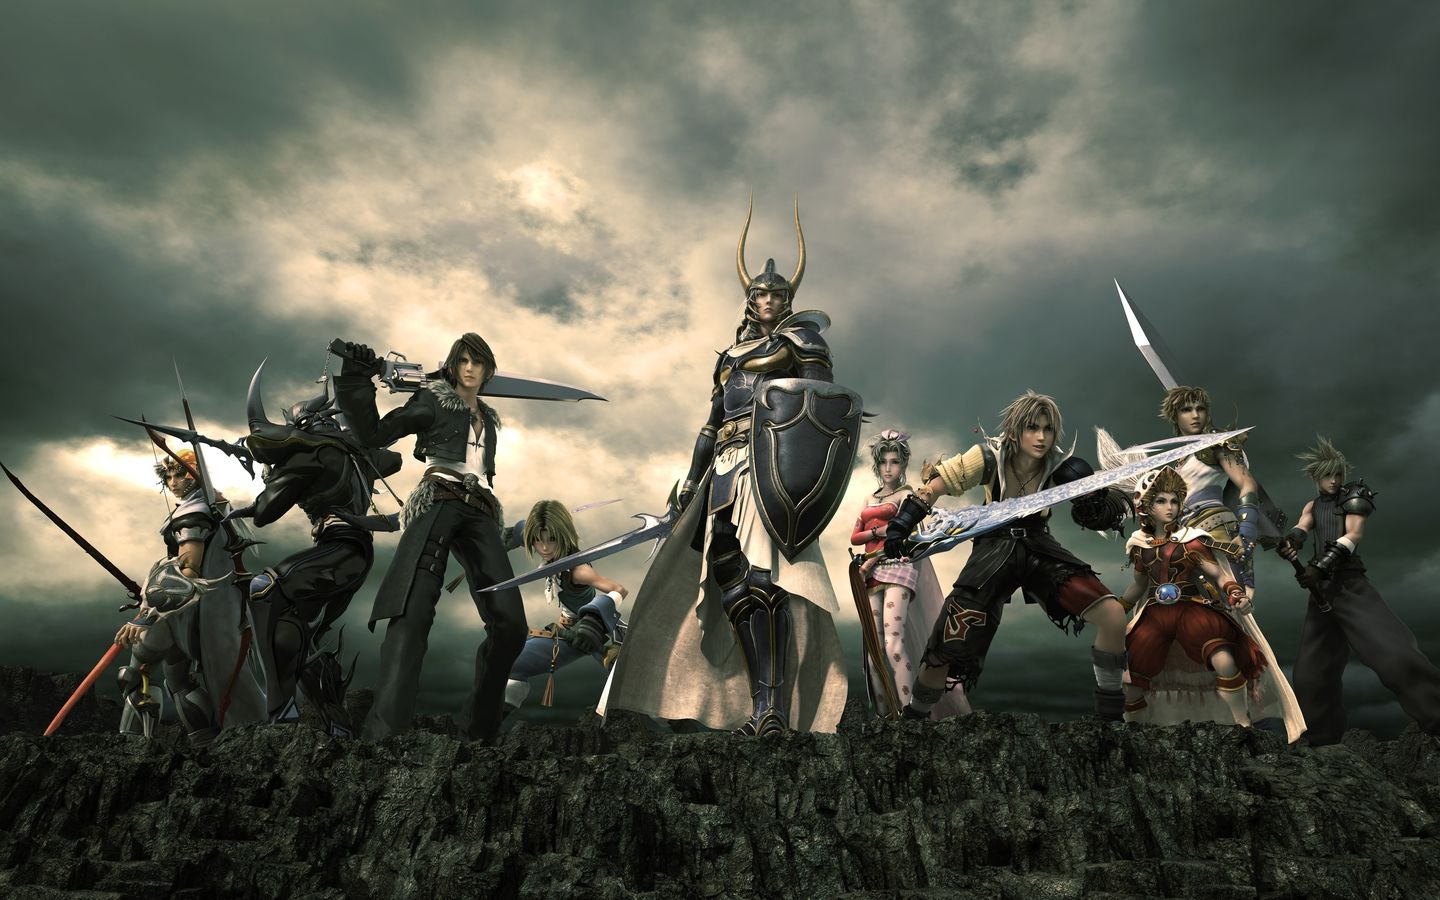 Hd Cool Wallpaper 1920x1080 Final Fantasy Hd Cool Wallpapers